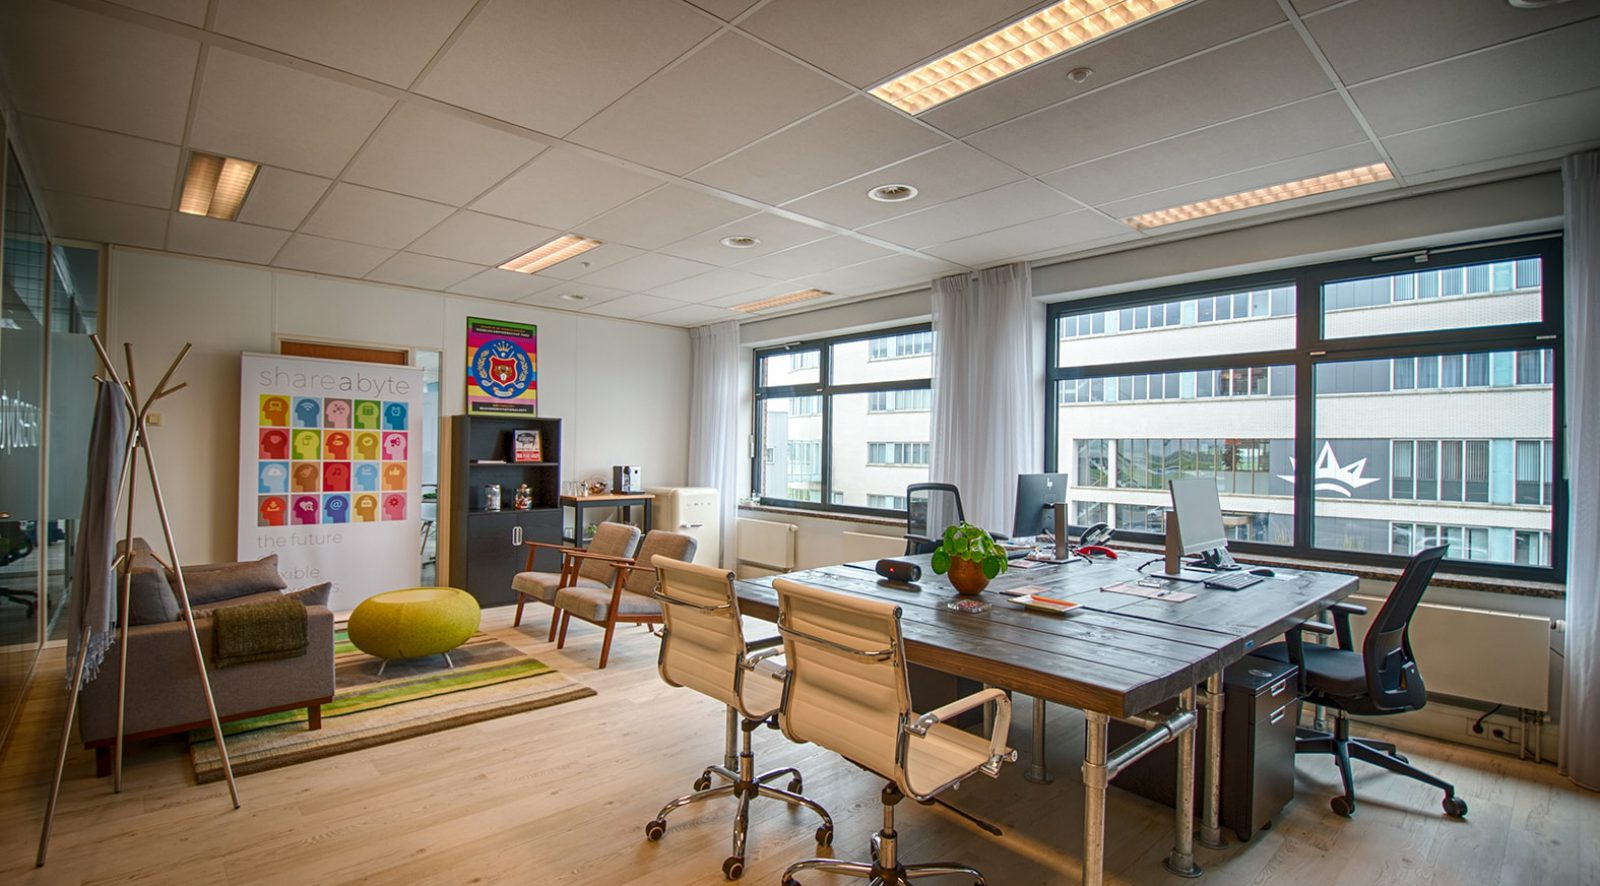 Bedrijfsruimte te huur in Bodegraven | Crown Business Center Bodegraven